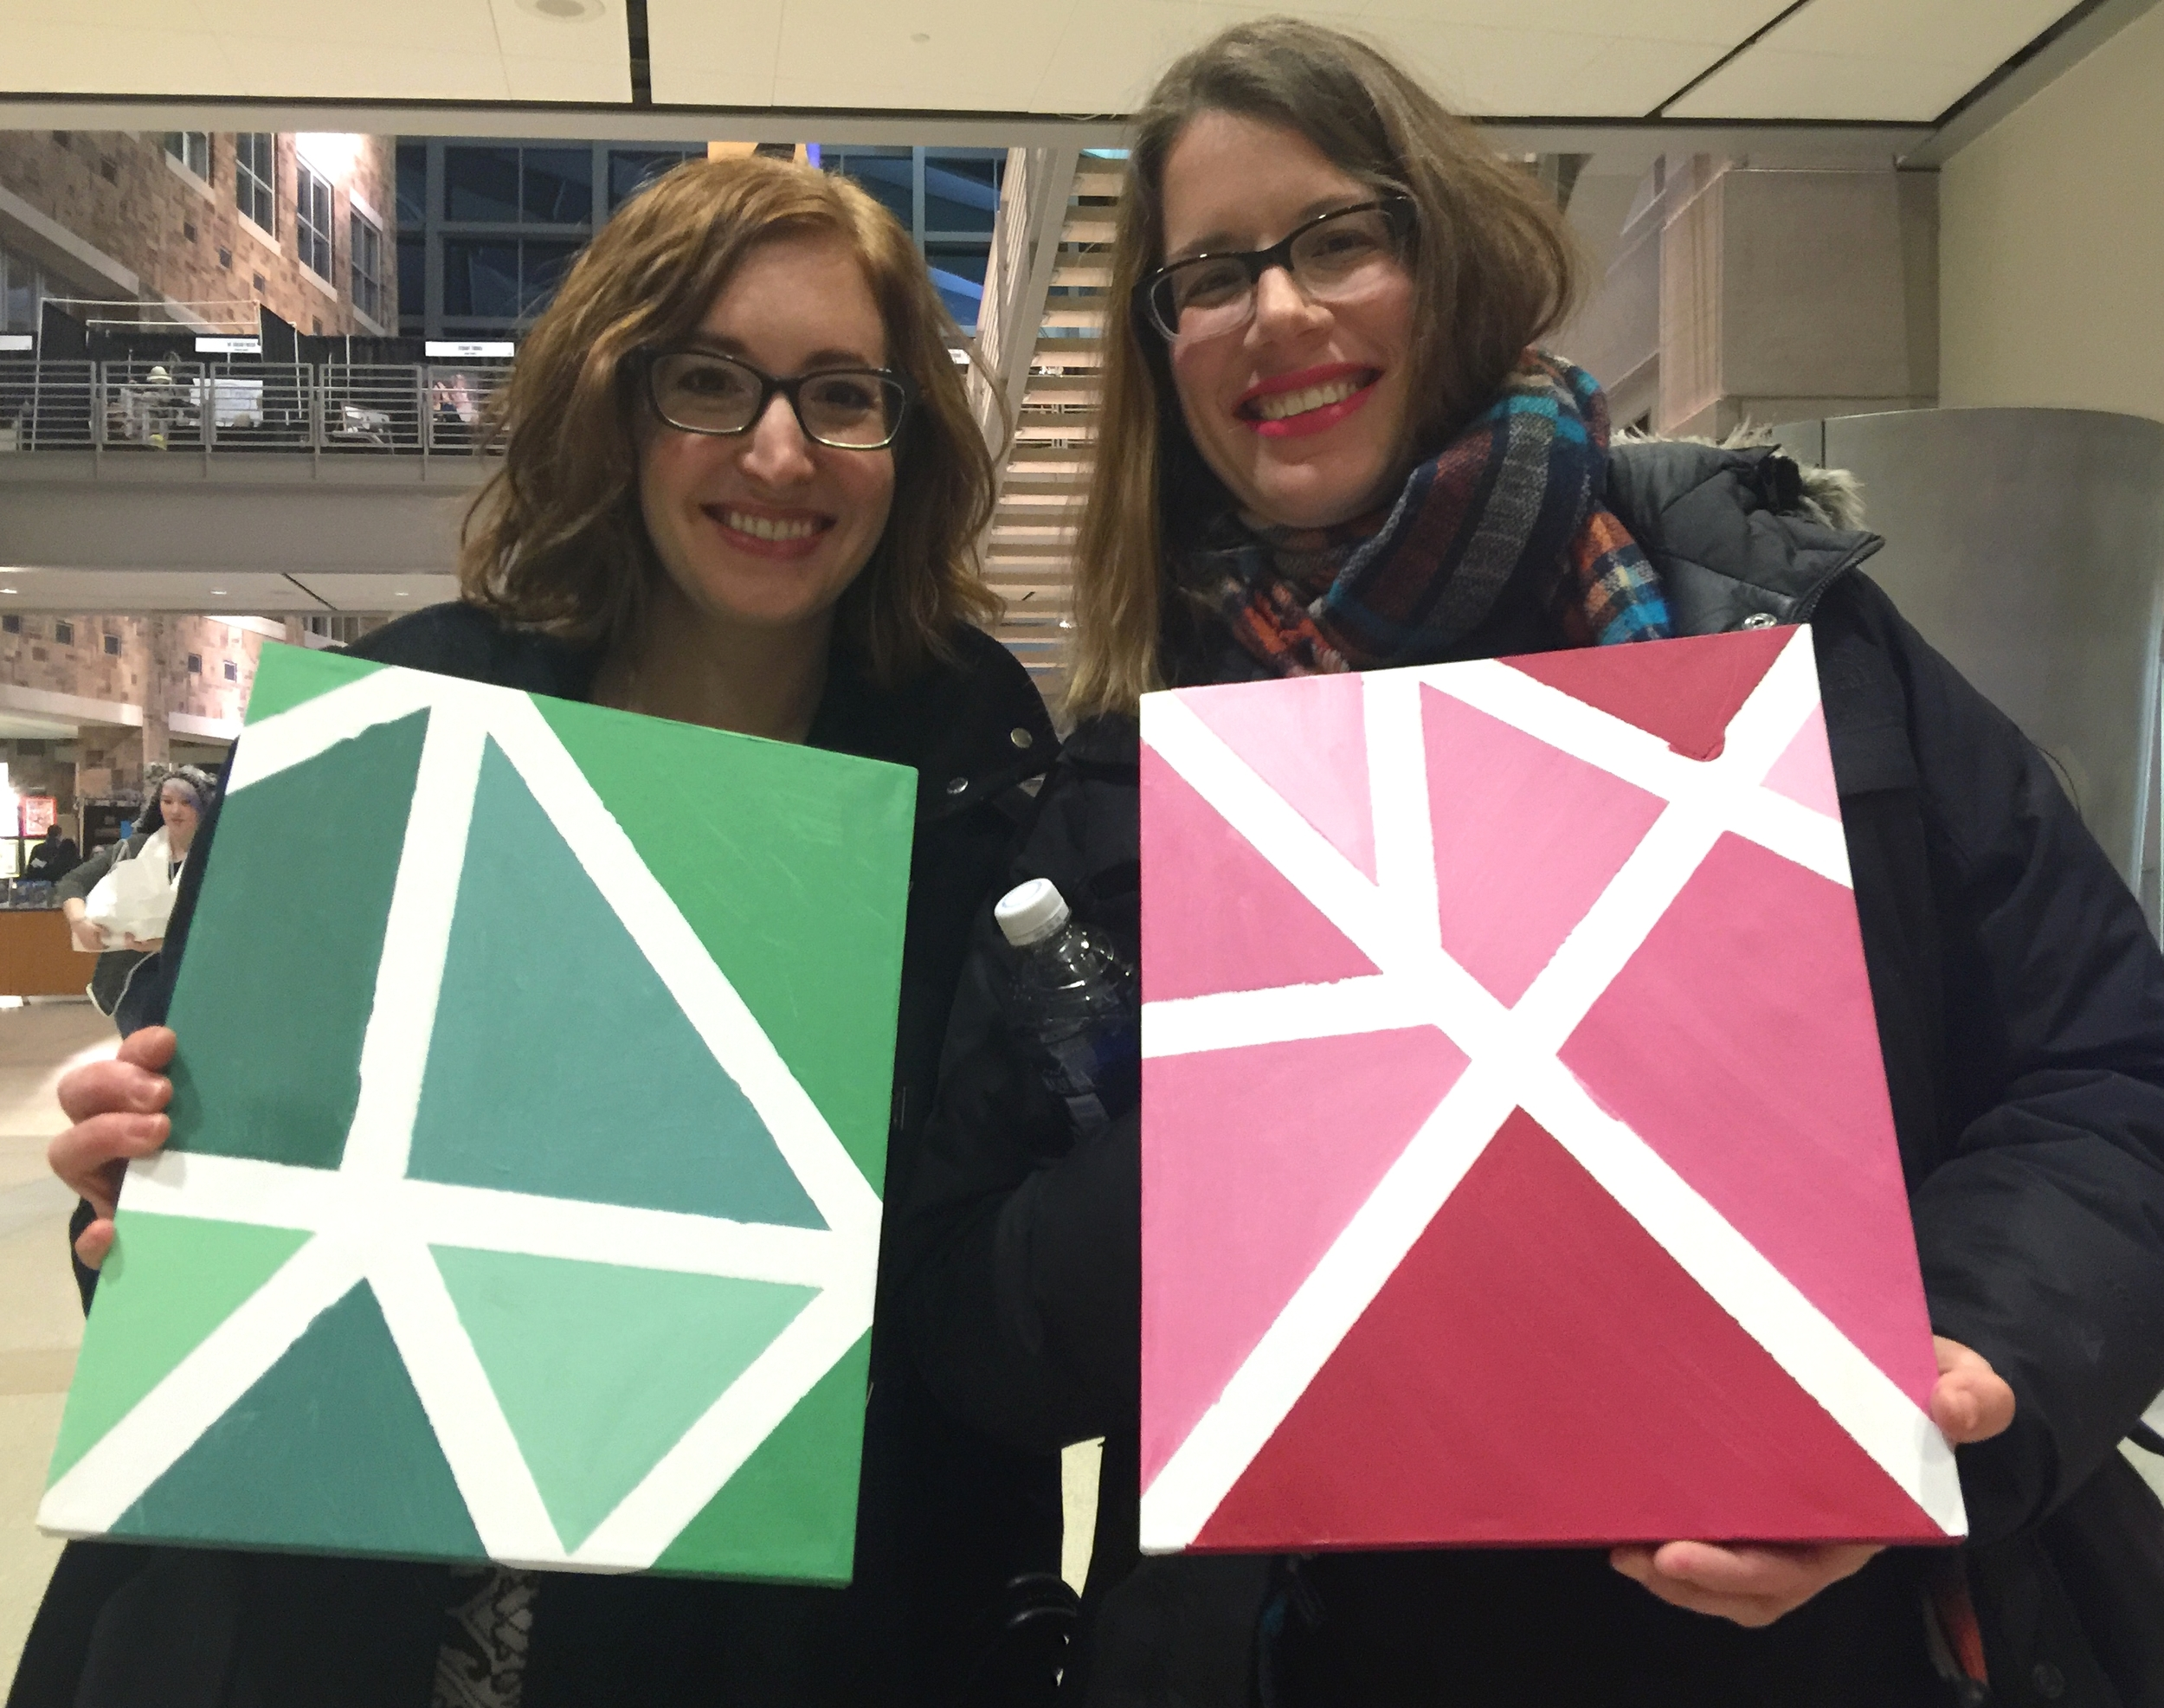 Displaying our canvases from Galentines' Art Night: when finished, they will have the outline of the state of Indiana. A fun project!